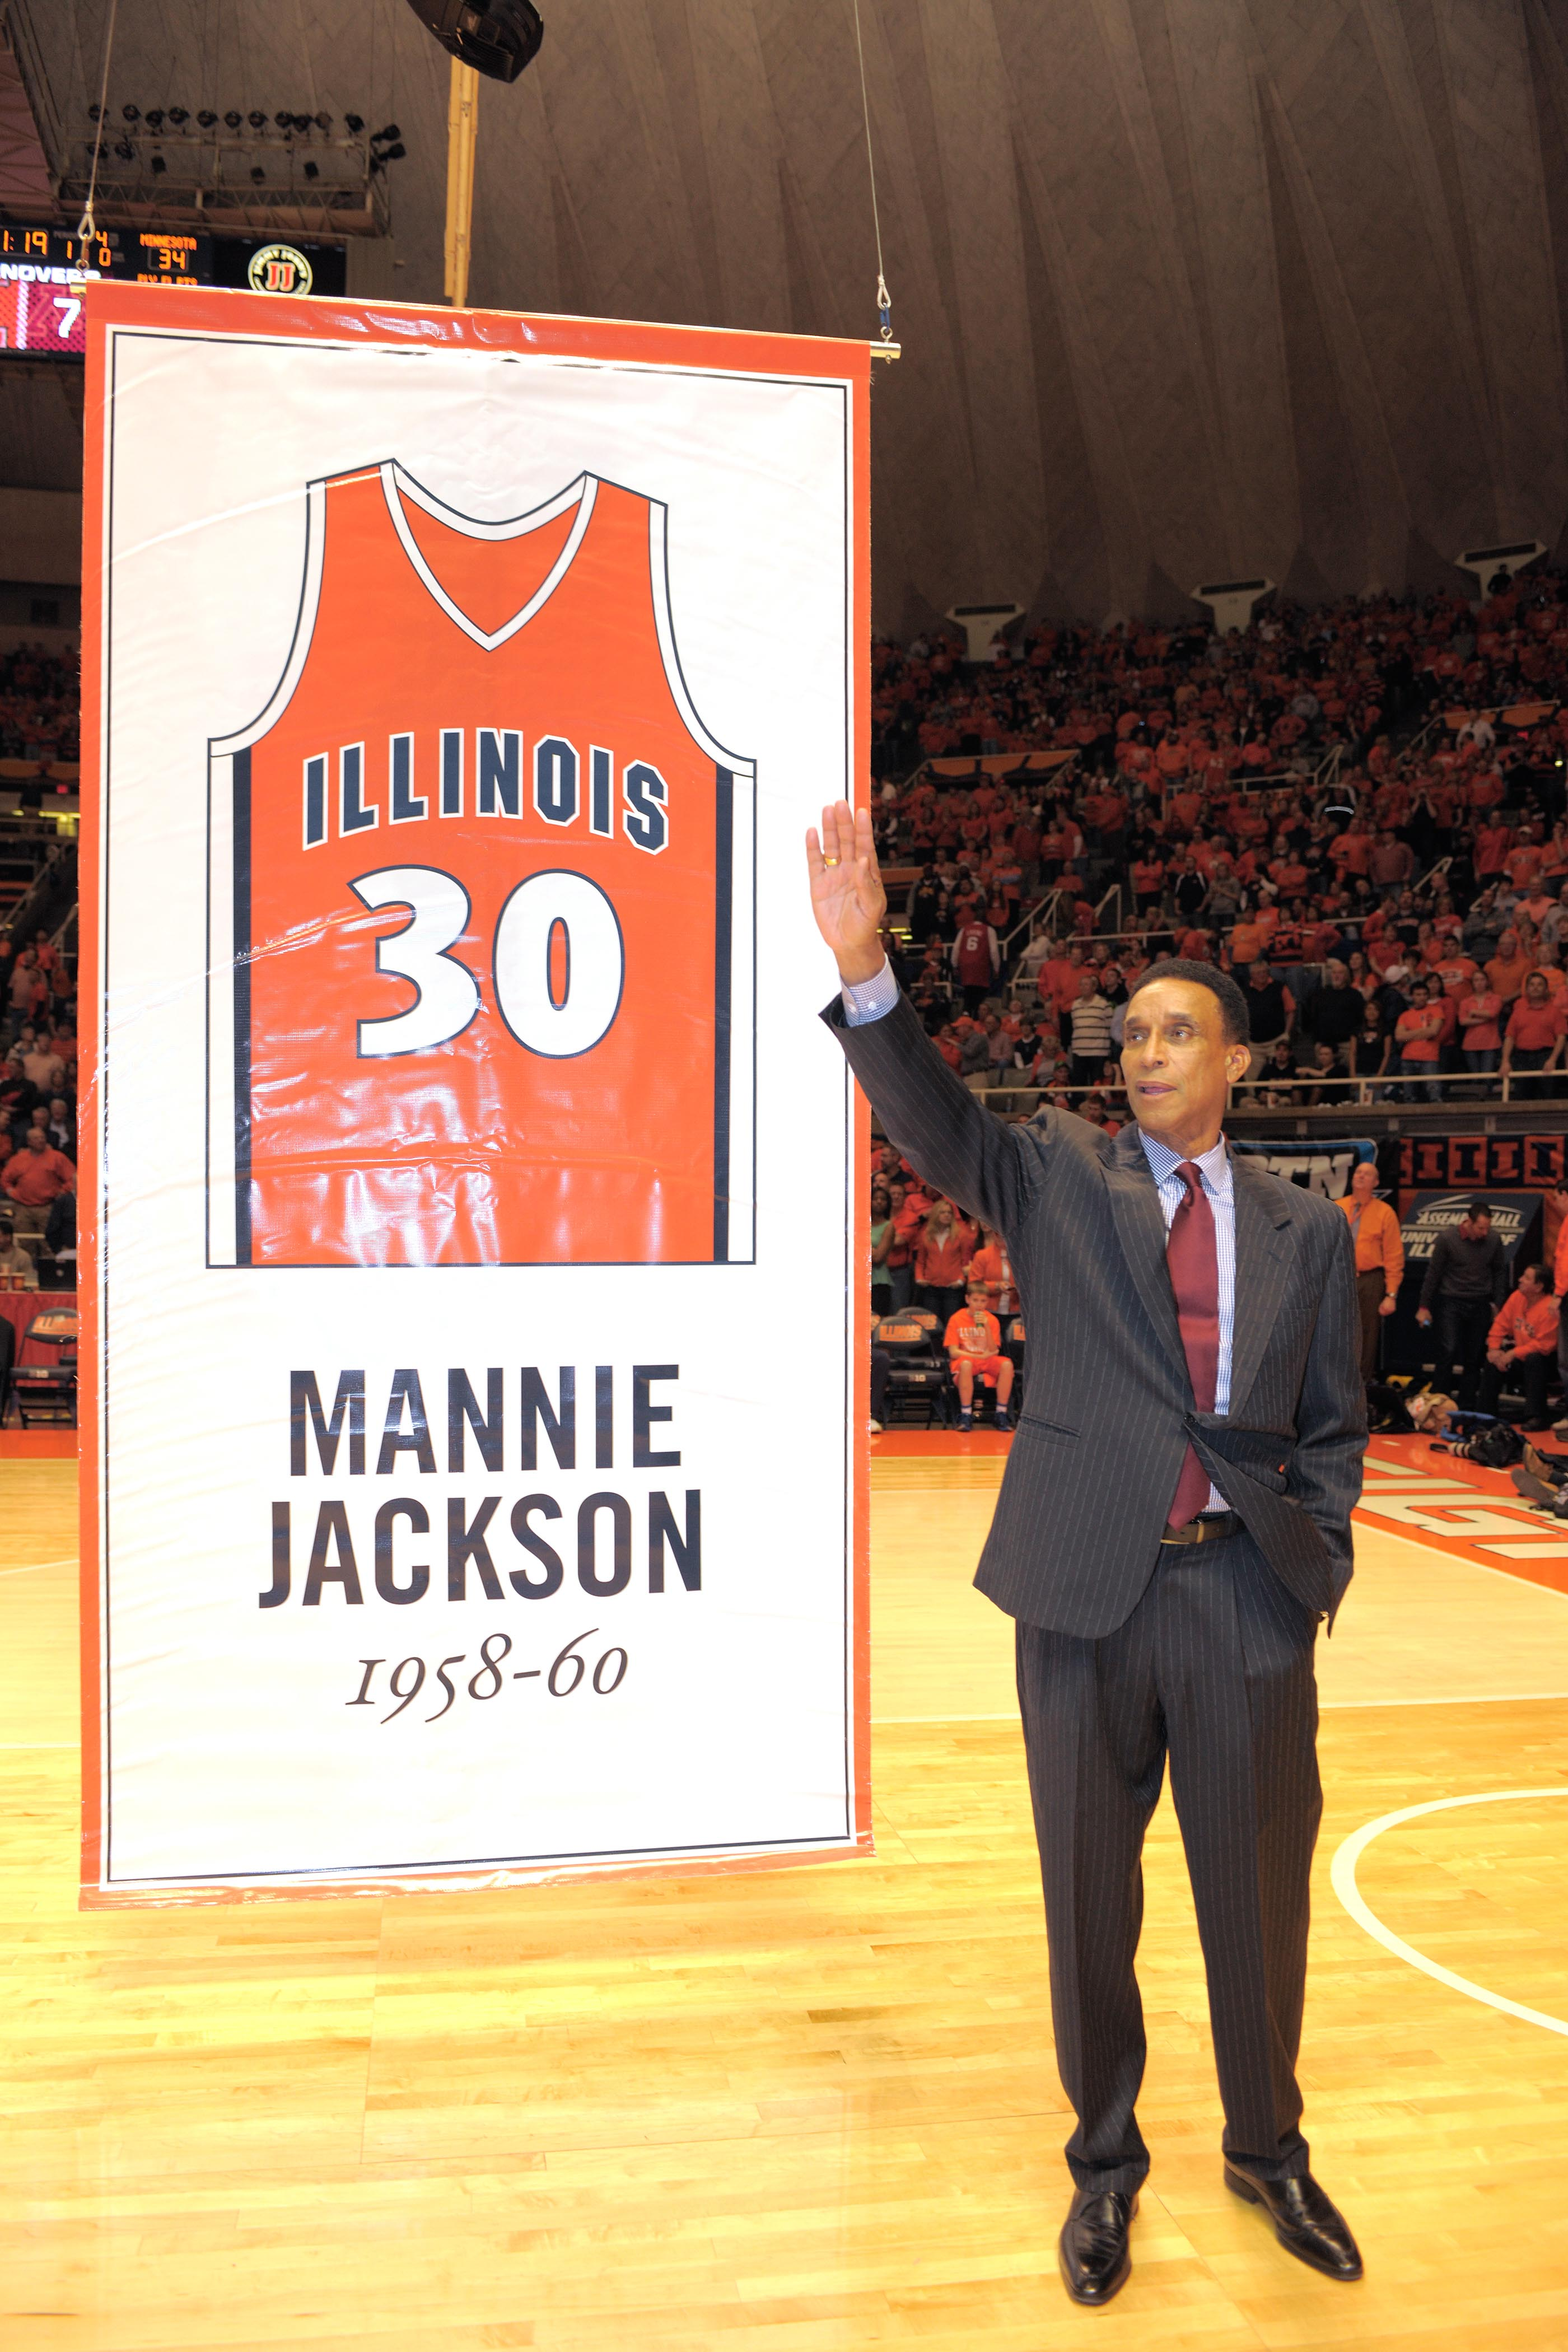 Former Illini Mannie Jackson is honored by having his jersey retired at Assembly Hall in 2013. Jackson was one of the first African-Americans to letter and start in basketball at Illinois. This September, he will be inducted into the Basketball Hall of Fame in the Class of 2017 along with nine other former stars.